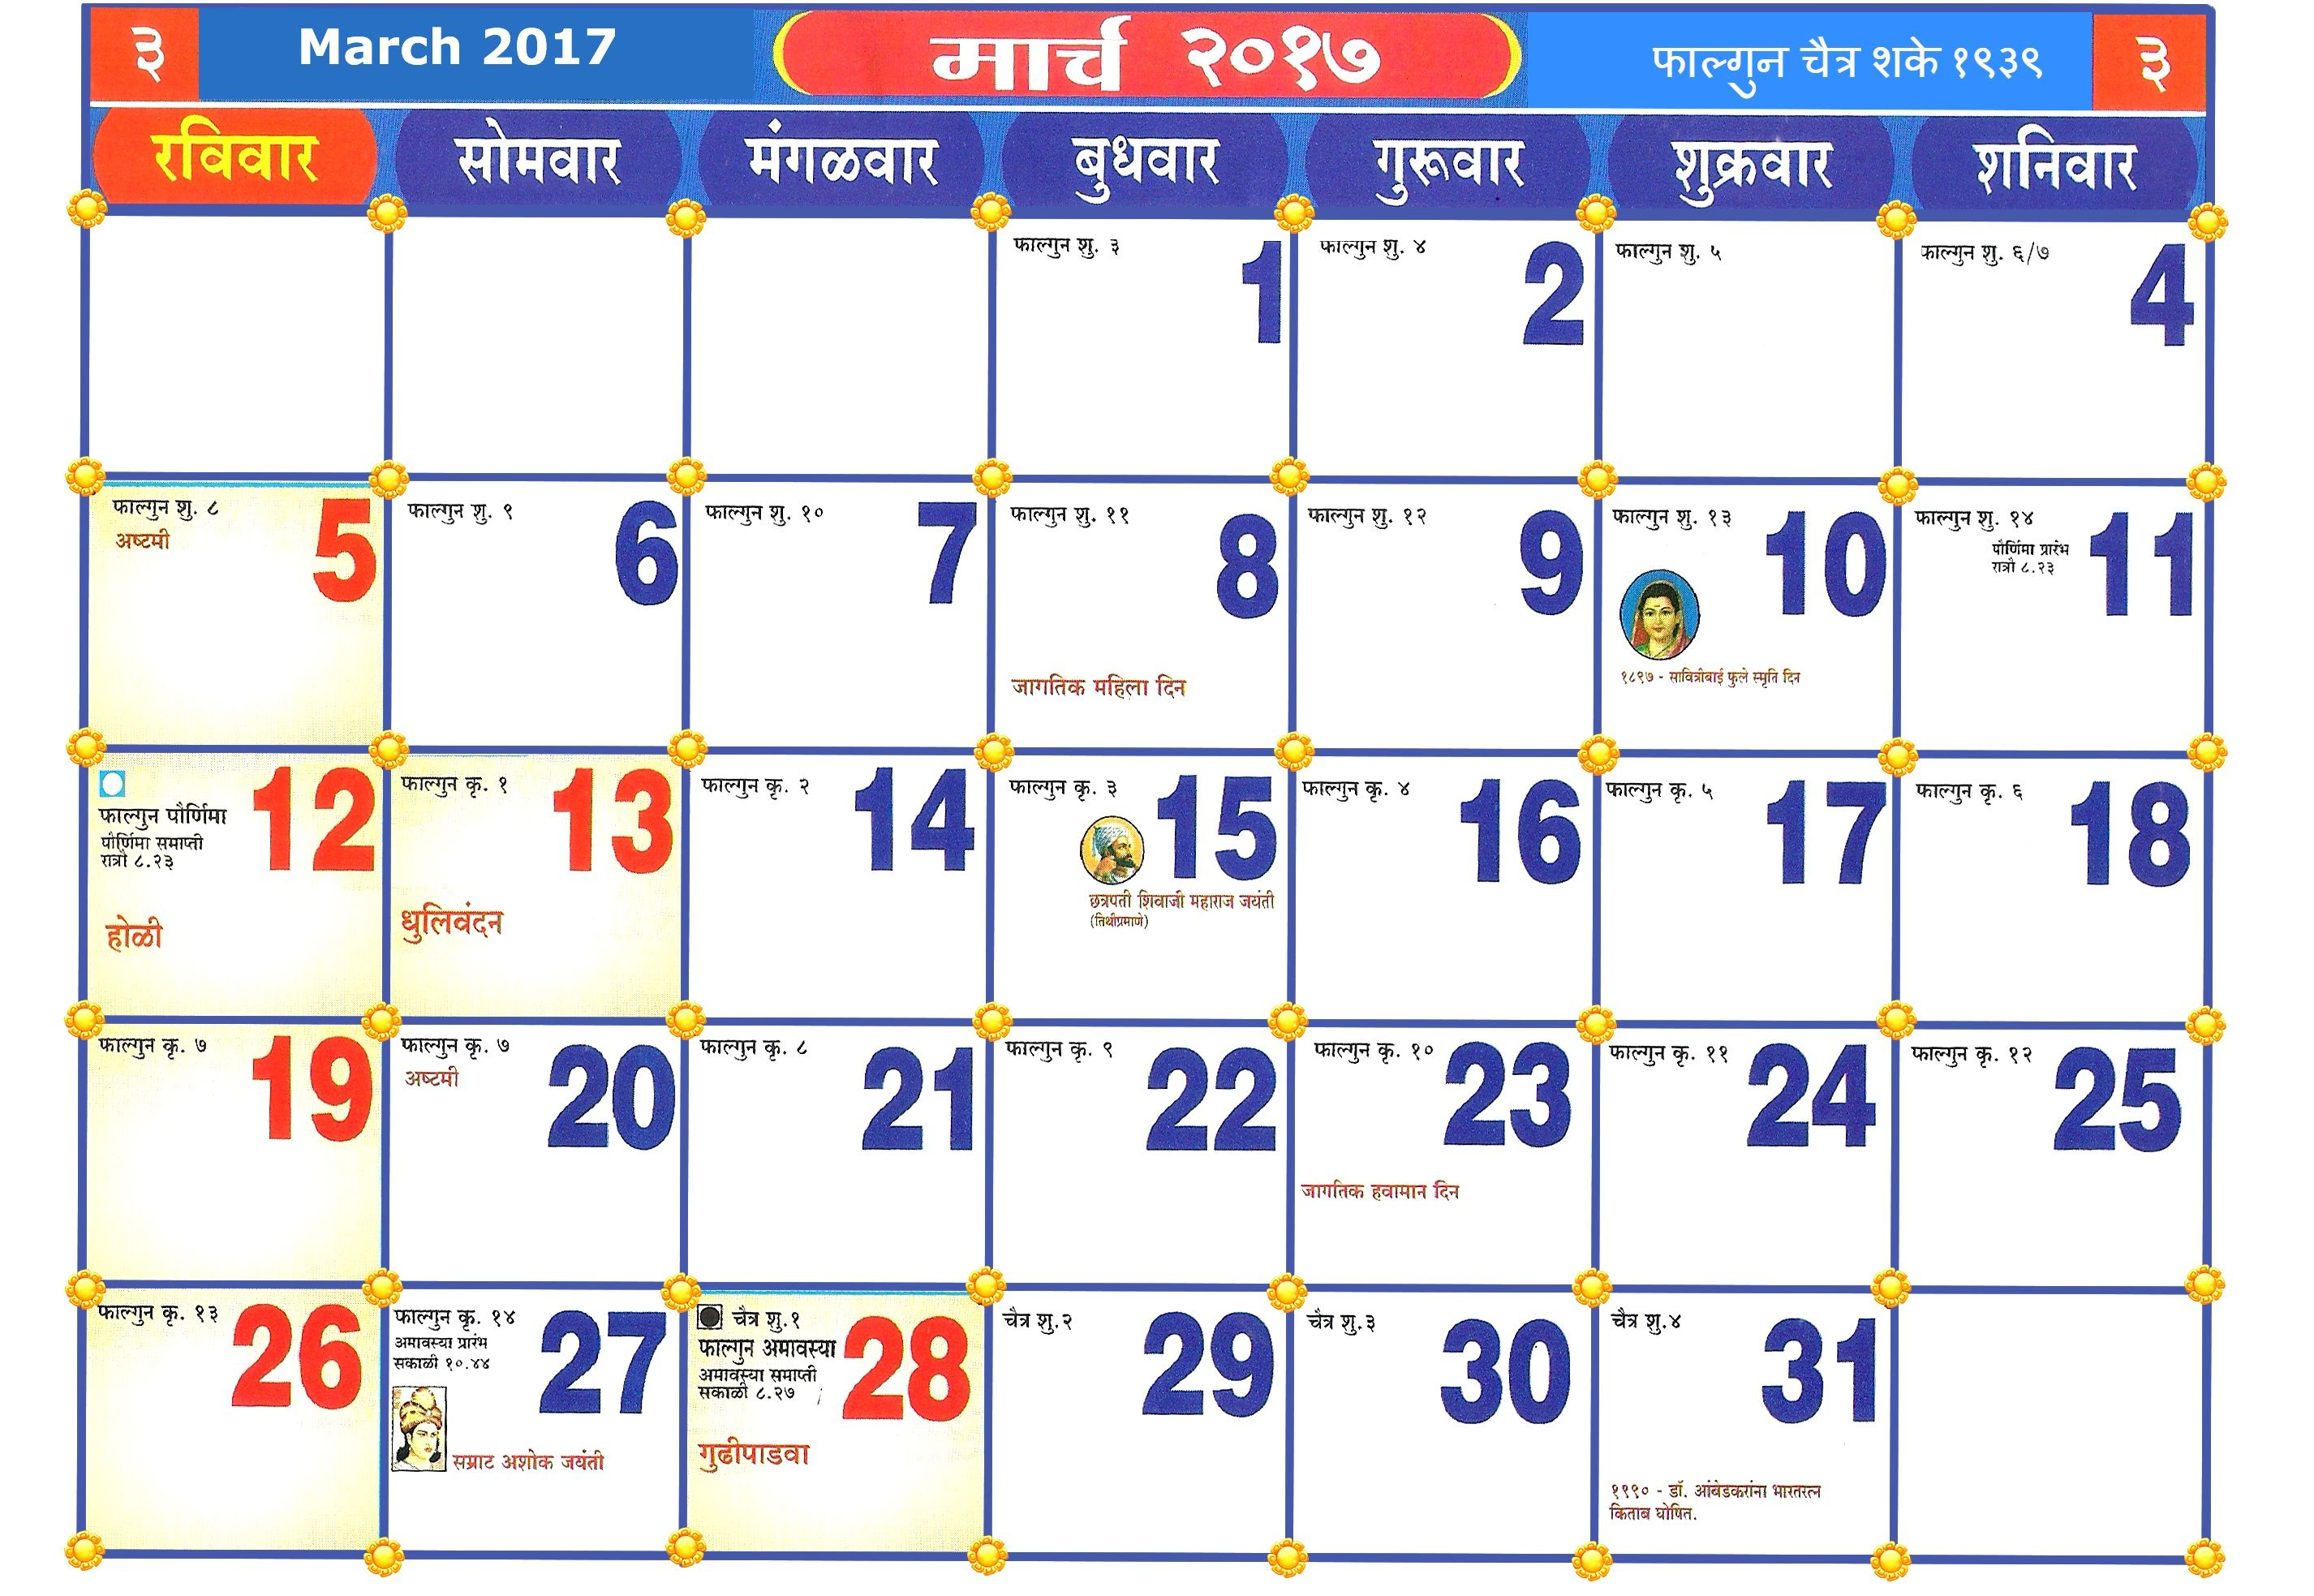 Marathi Calendar For March 2019 | 100+ March 2019 Calendar